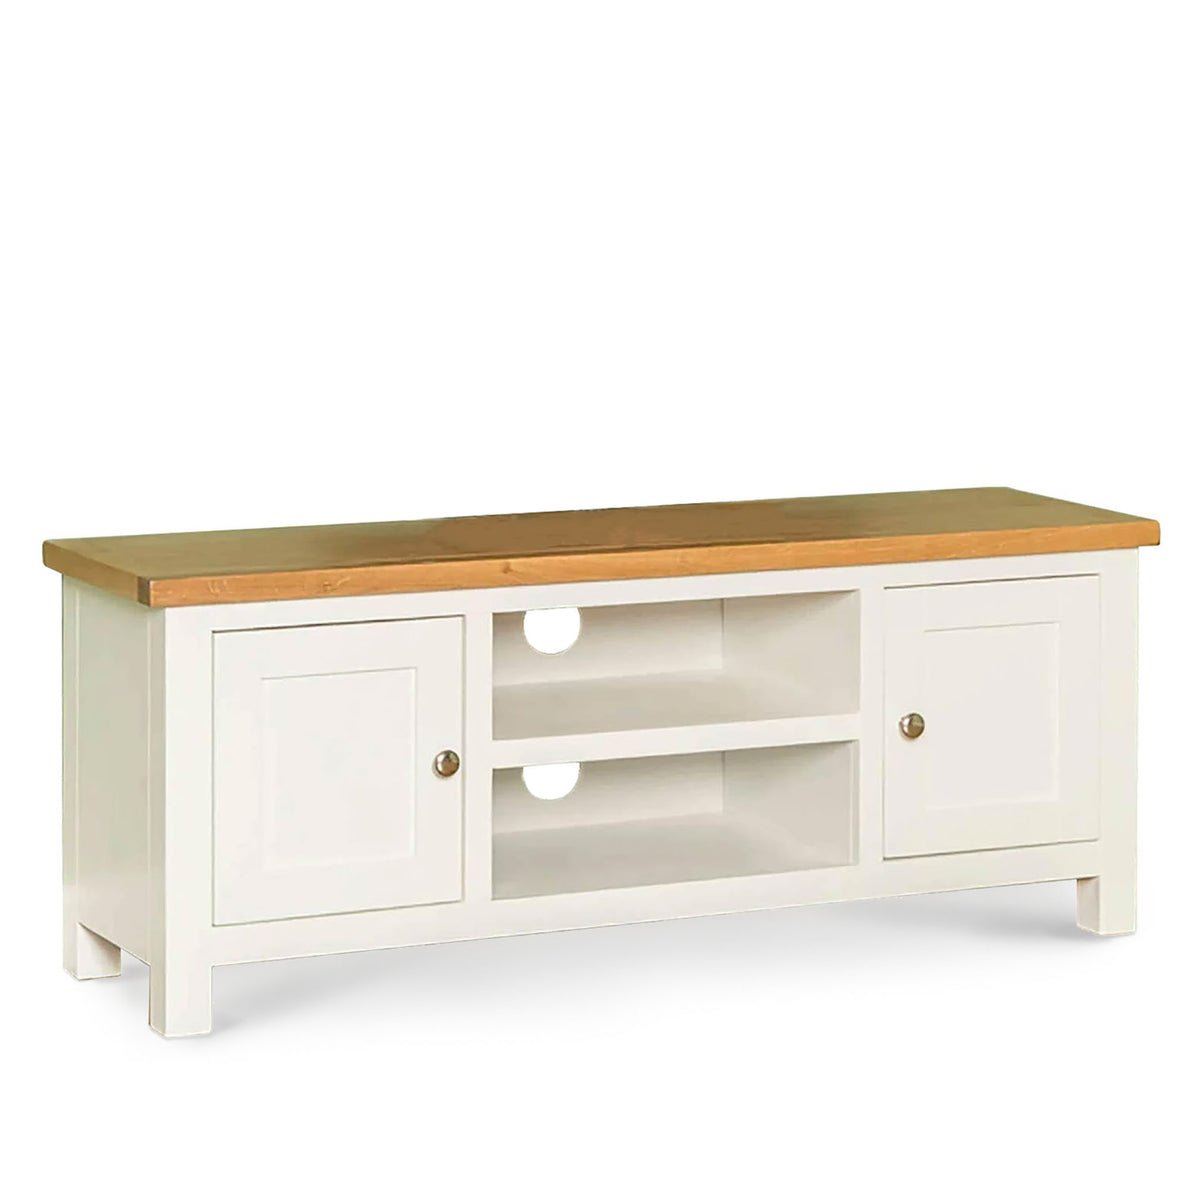 Farrow white 120cm TV Stand Unit by Roseland Furniture